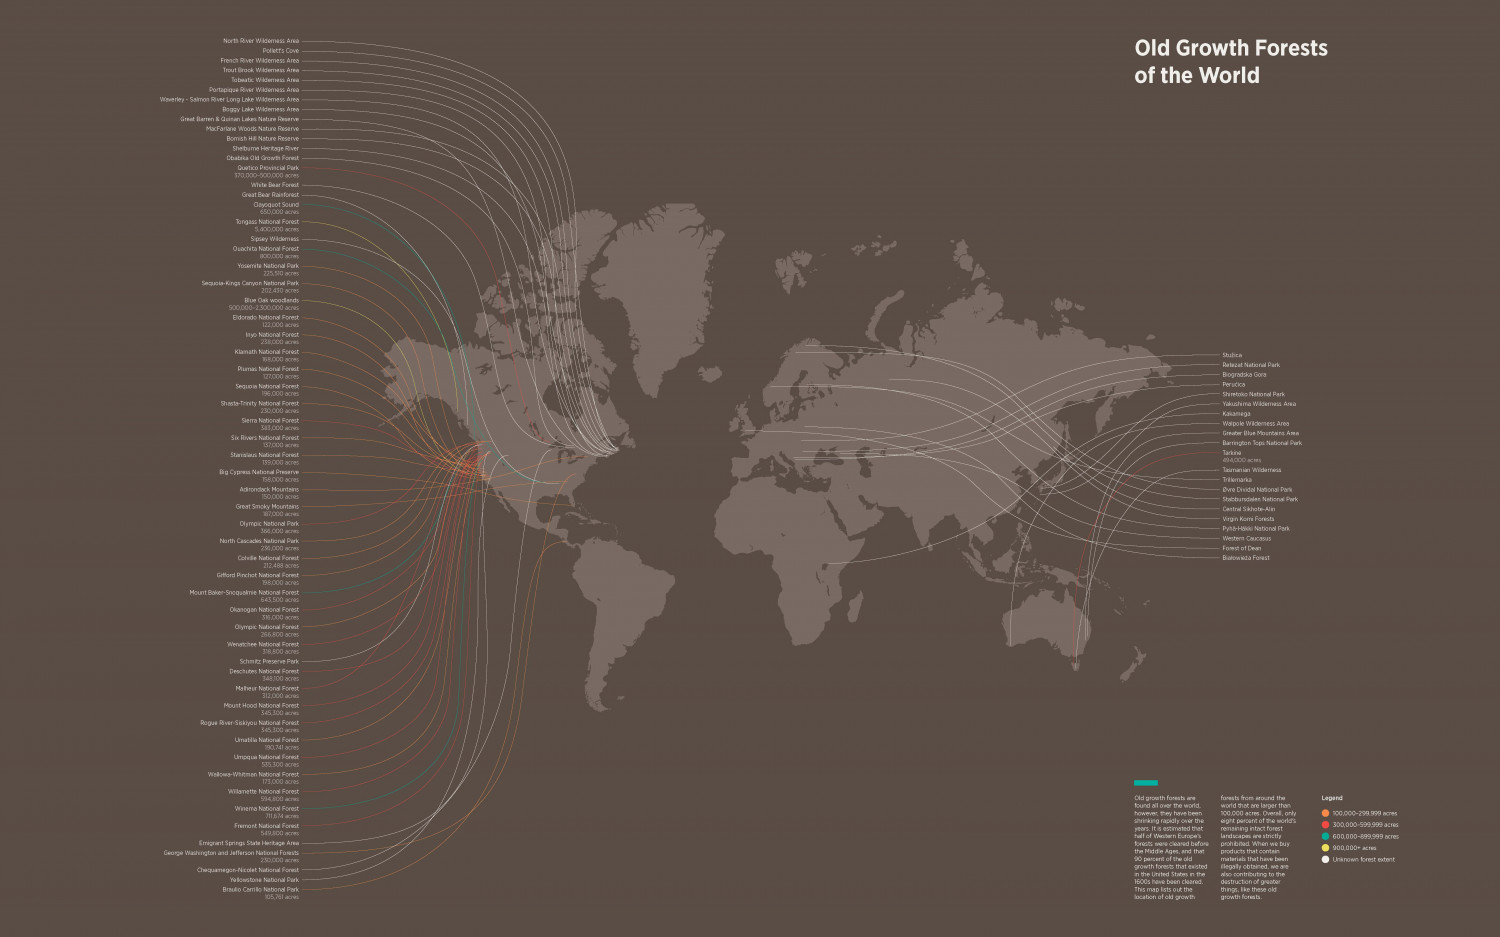 Old Growth Forests of the World Infographic